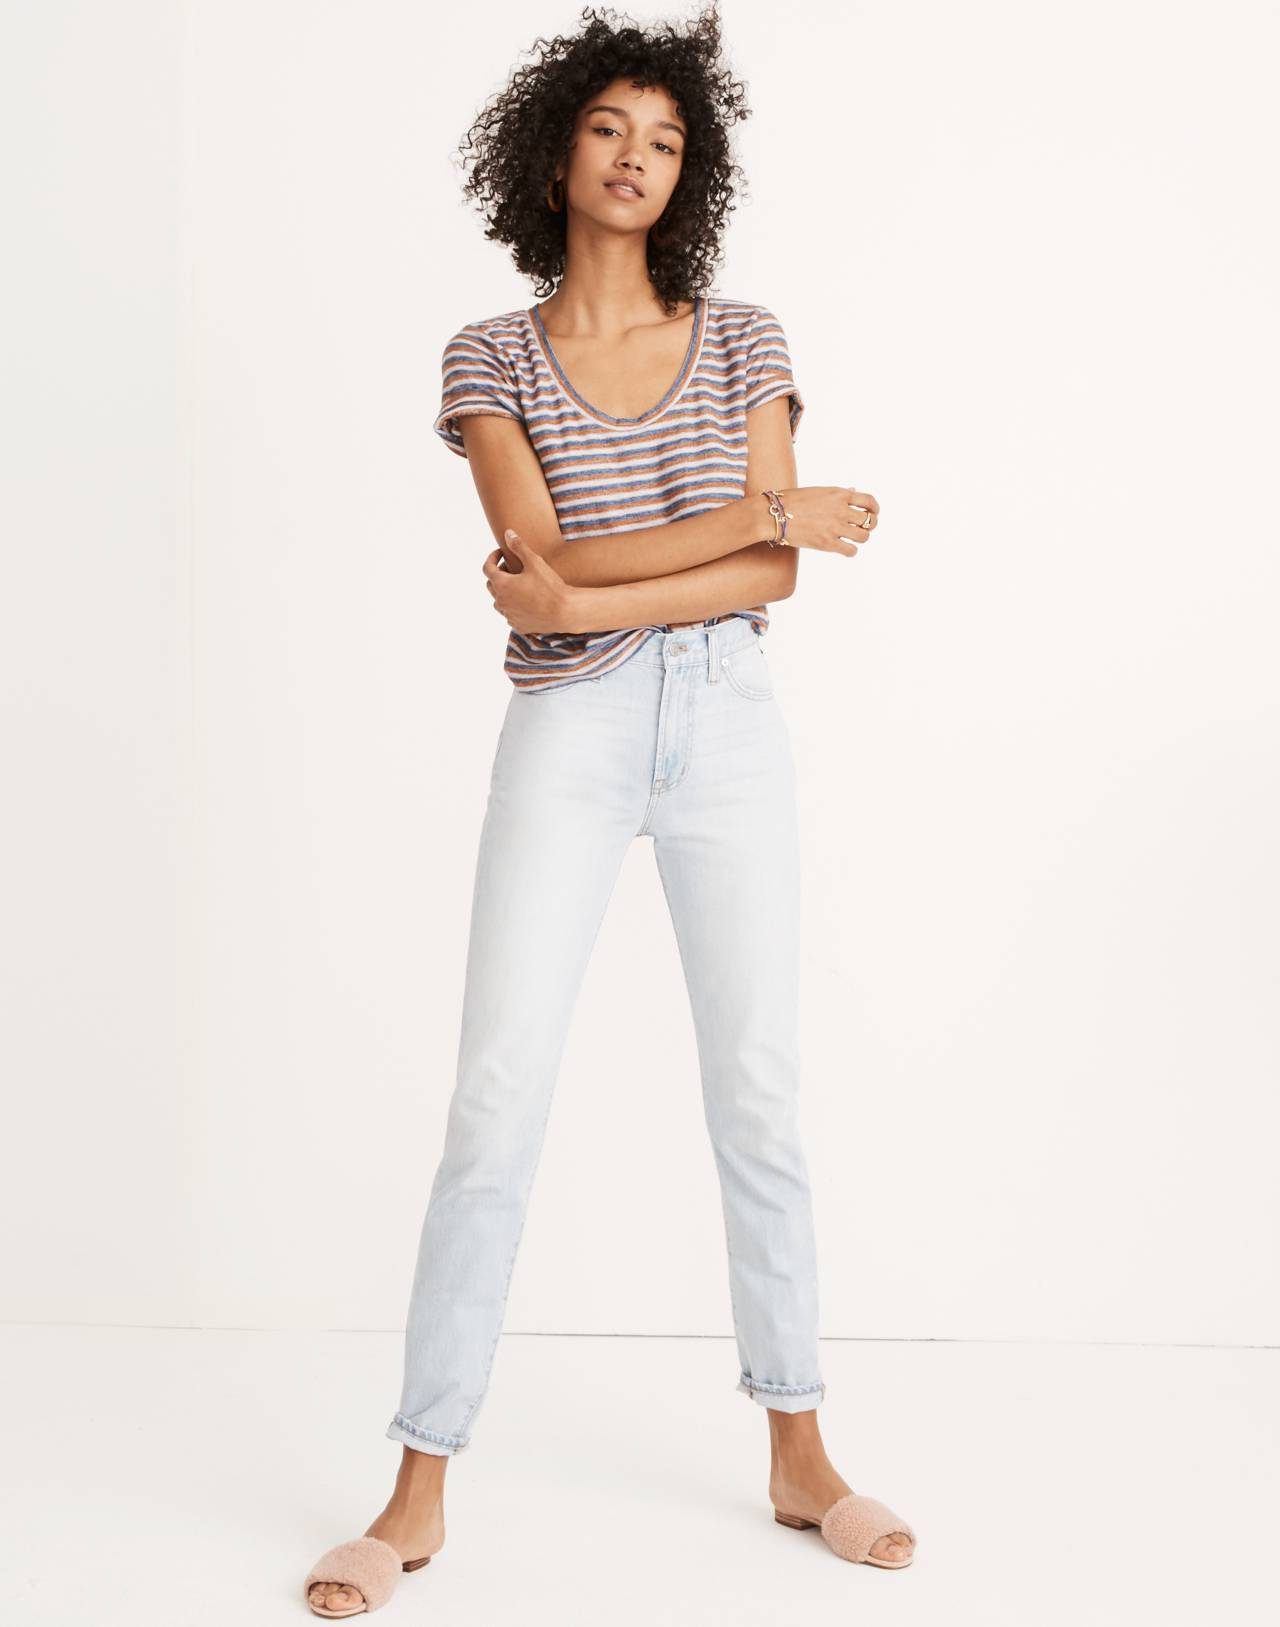 The Perfect Vintage Jean in Fitzgerald Wash in fitzgerald wash image 1